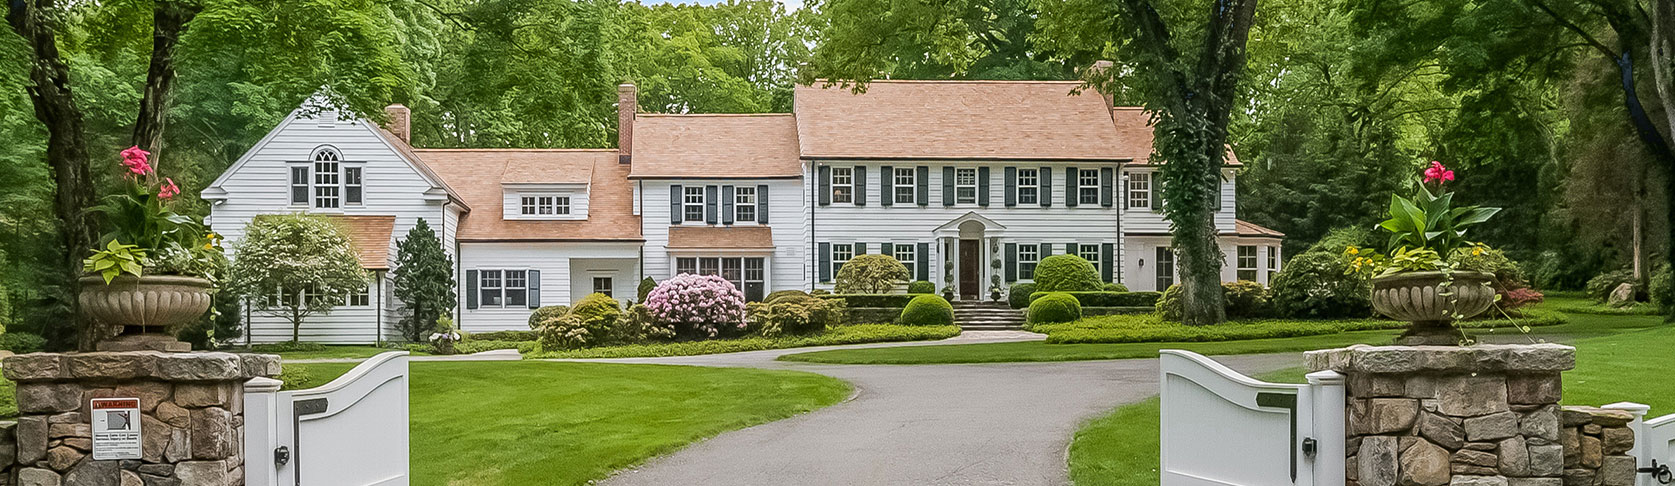 370 Wahackme Road, New Canaan, CT